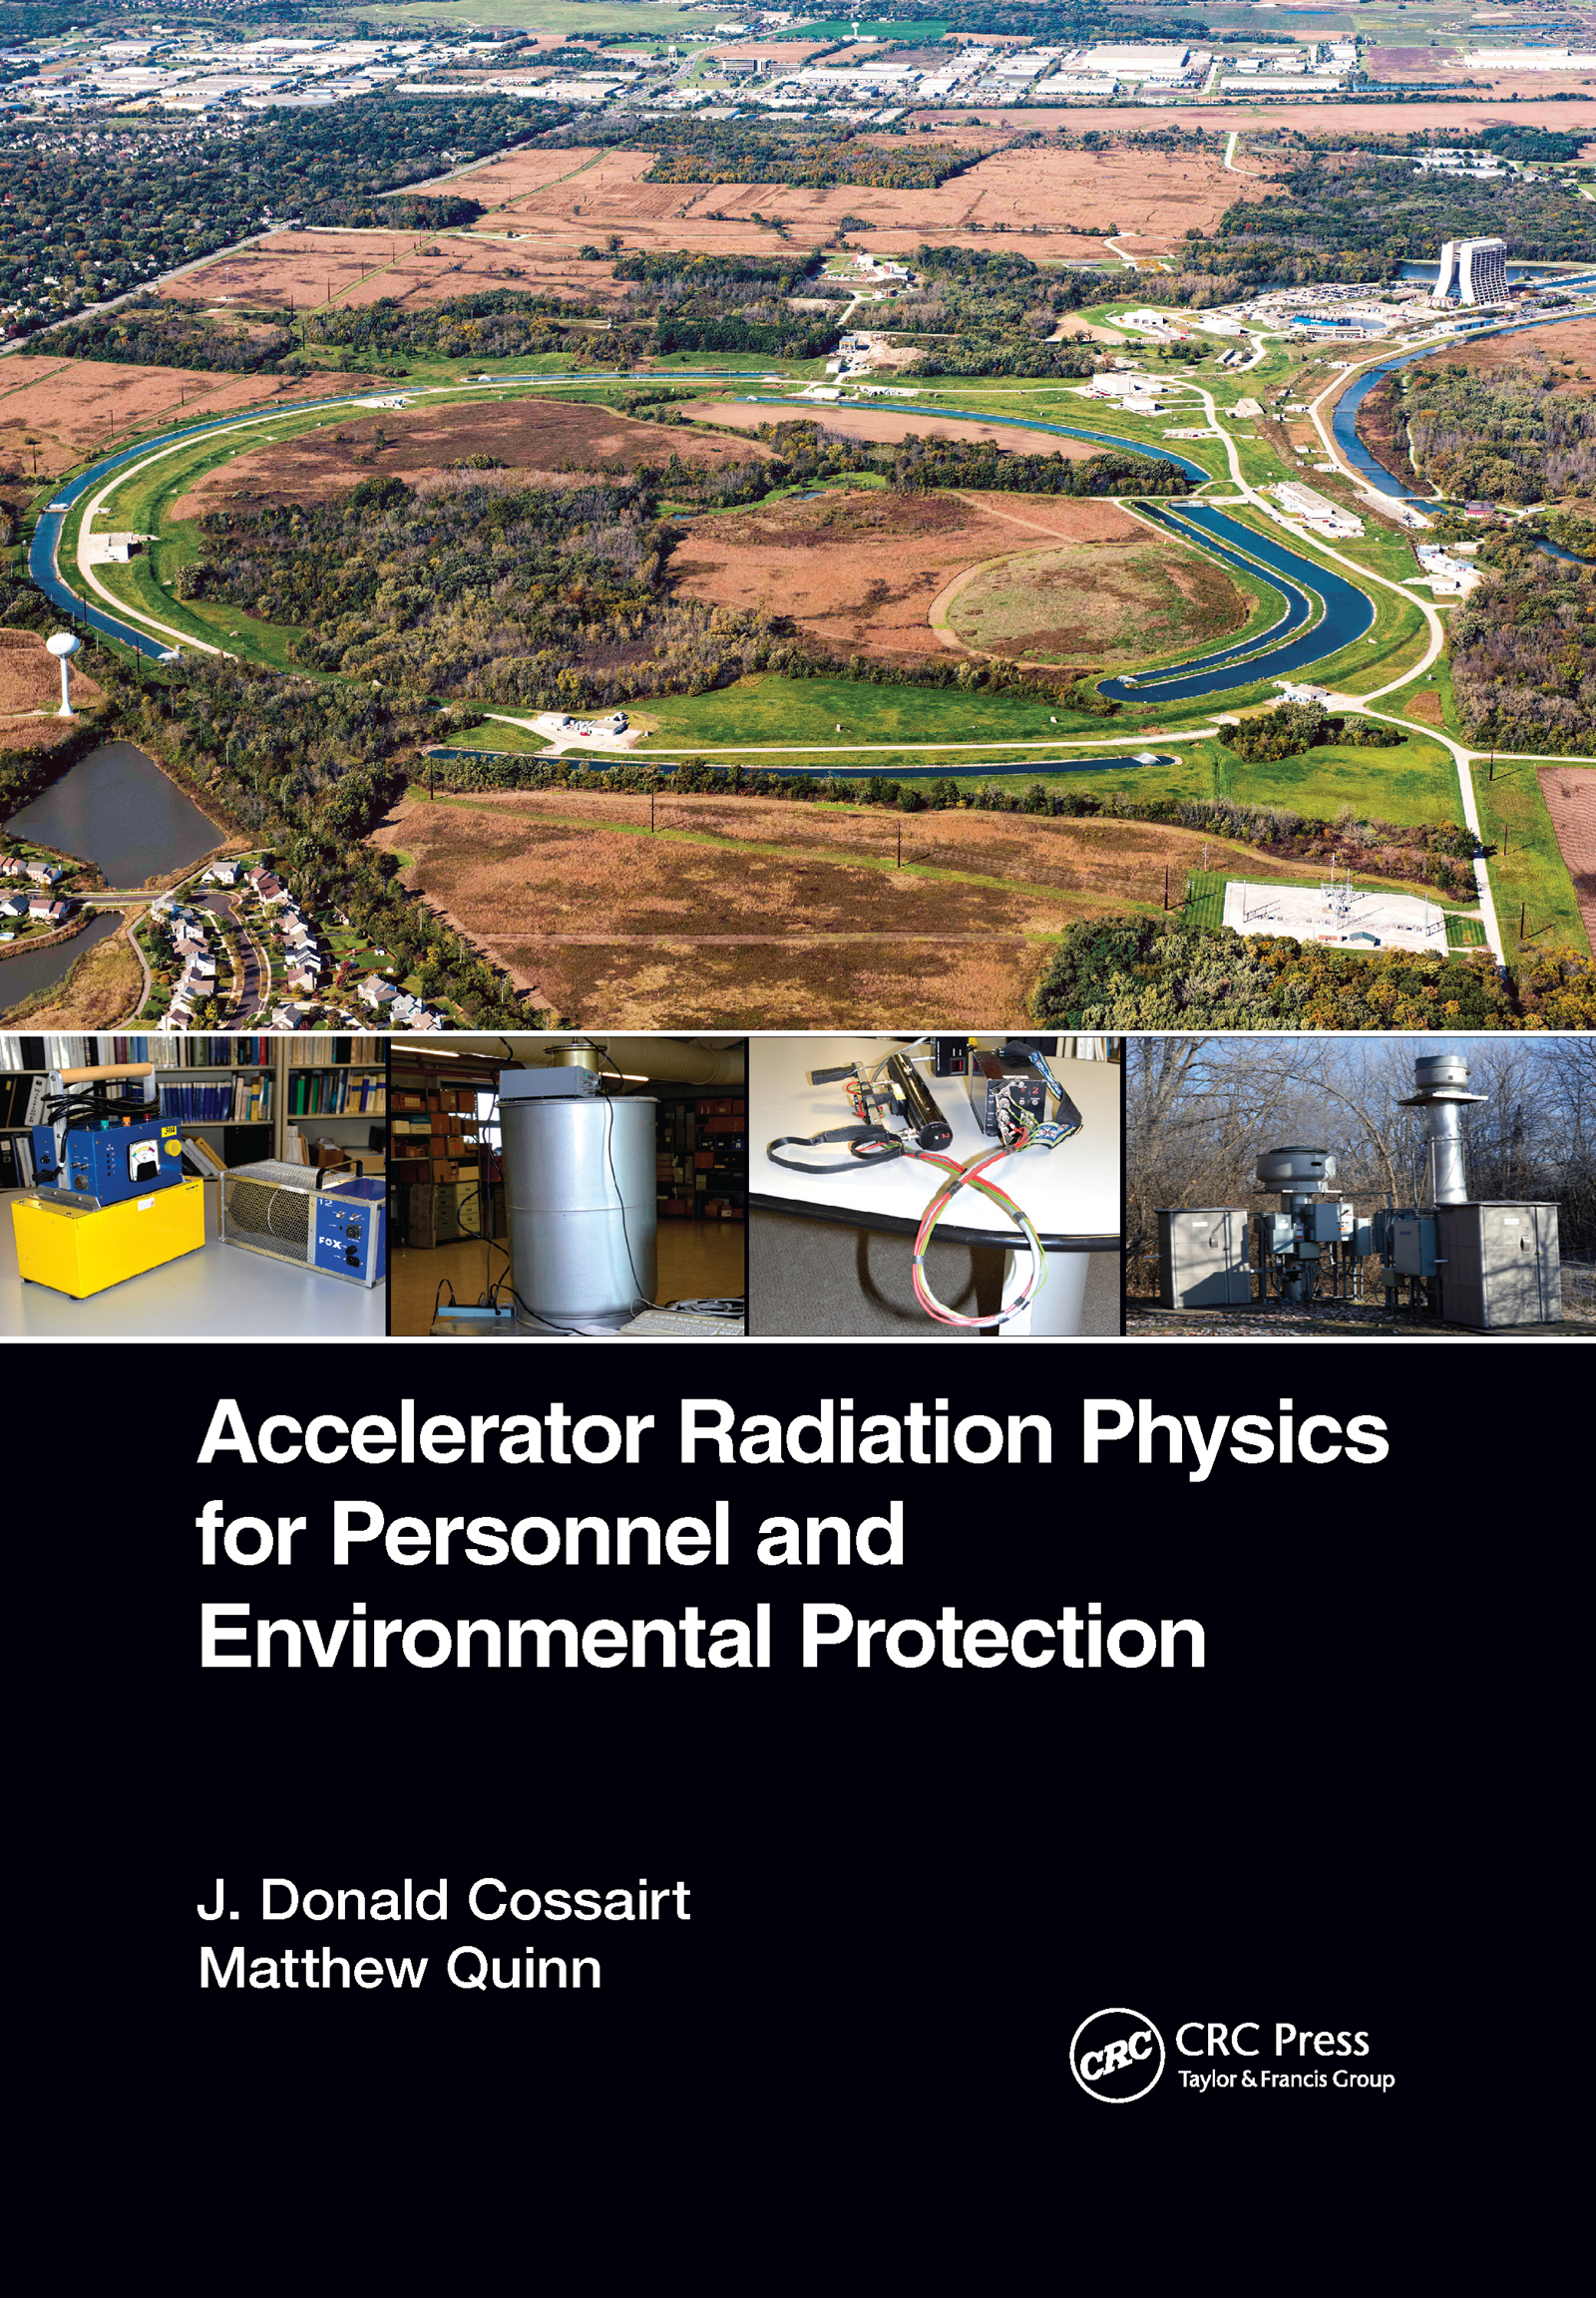 Accelerator Radiation Physics for Personnel and Environmental Protection